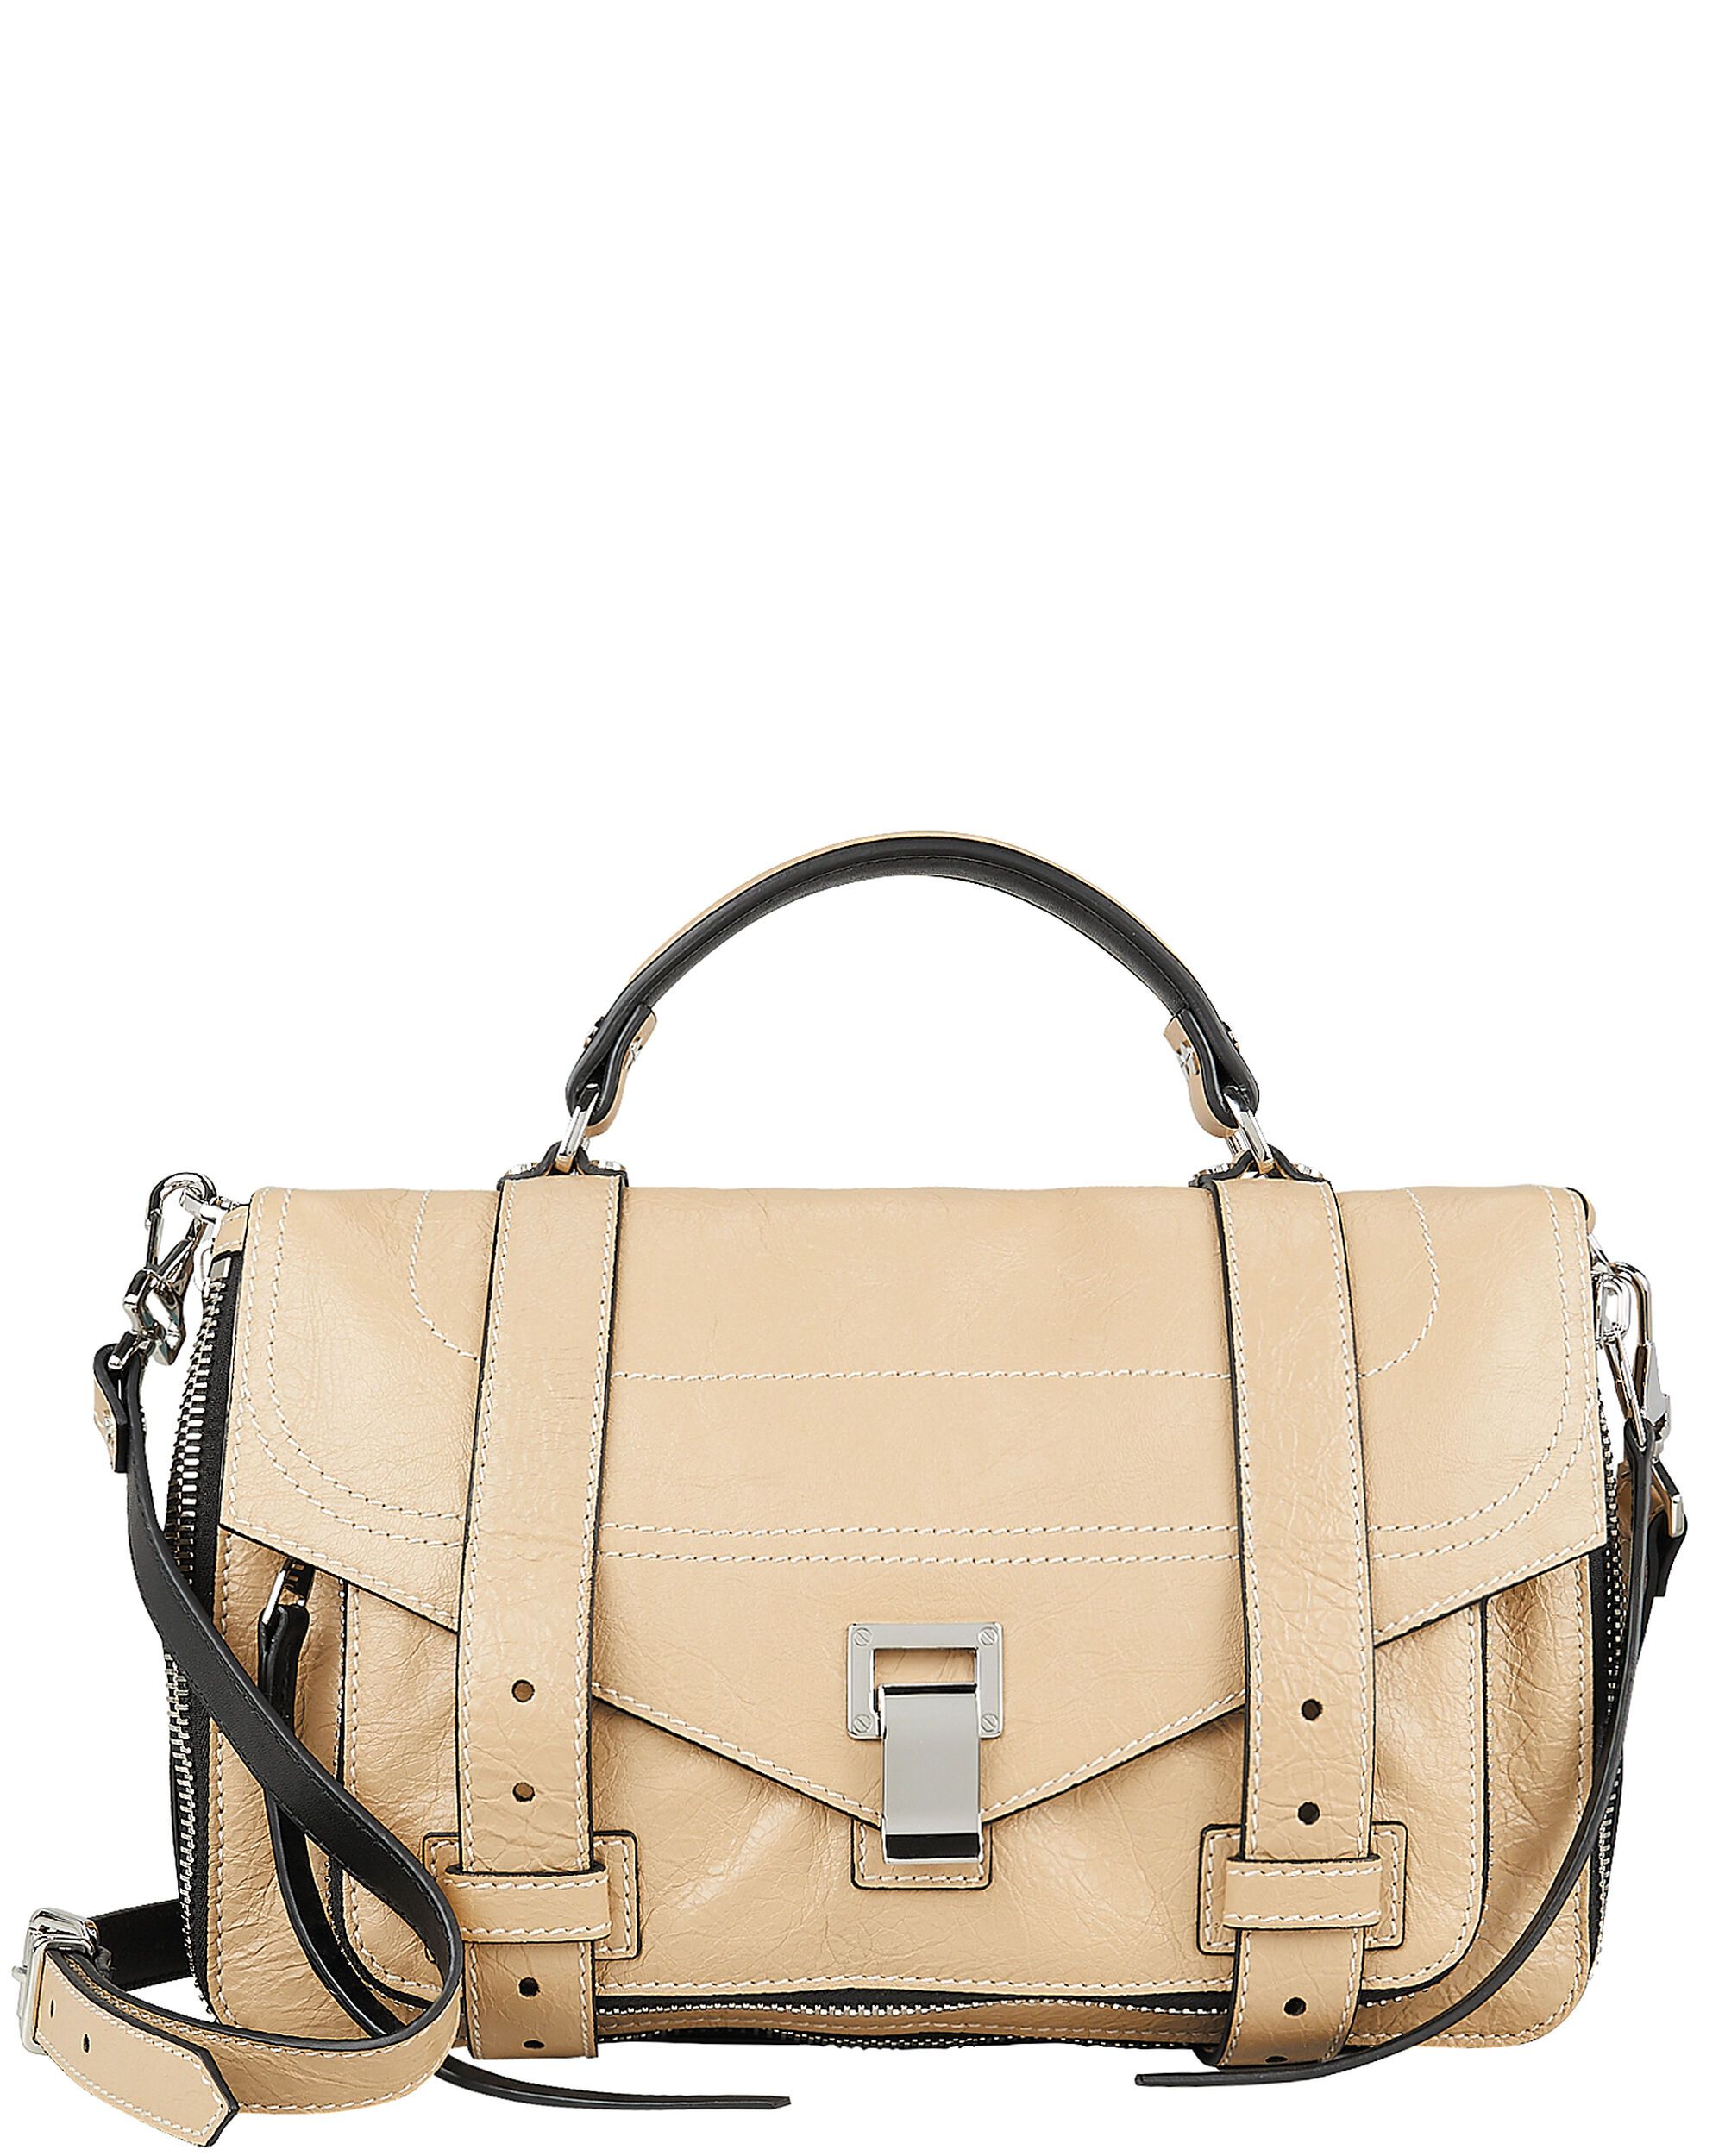 PS1 Medium Leather Messenger Bag, BEIGE, hi-res